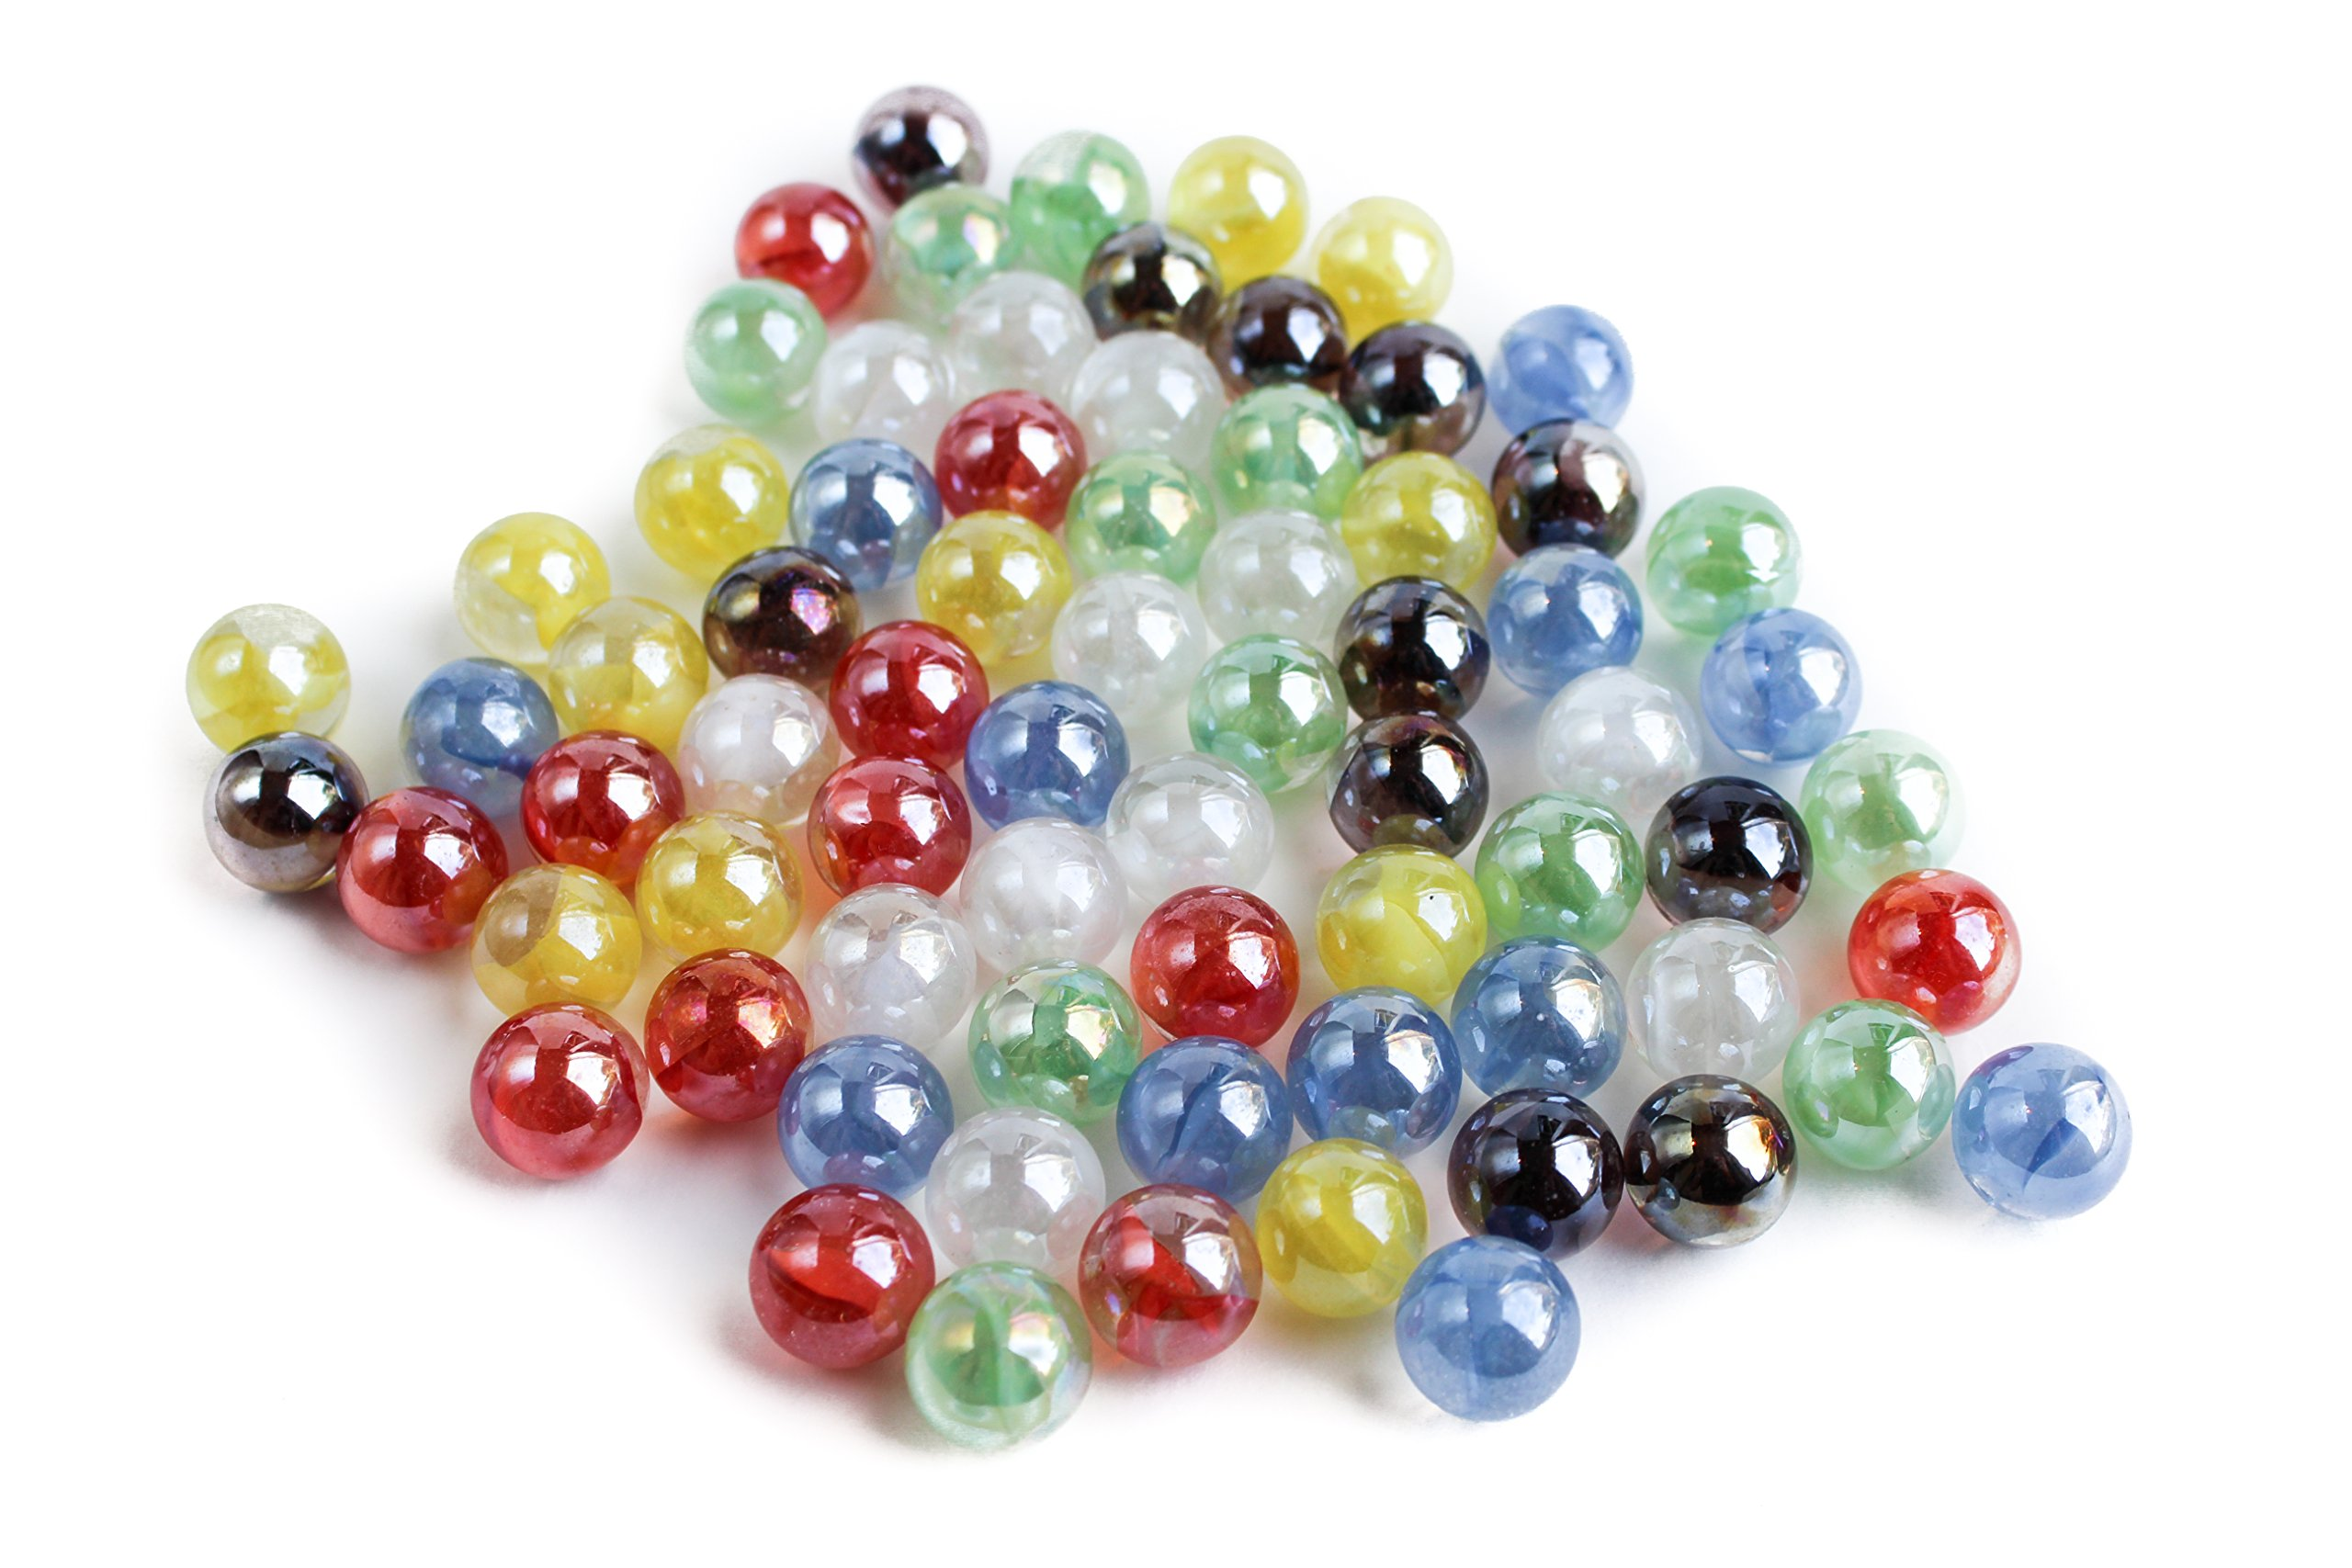 Omen Marble Co. Chinese Checkers Marbles, 60 Piece + Extras, Shimmer Cat's Eyes by Omen Marble Co. (Image #1)